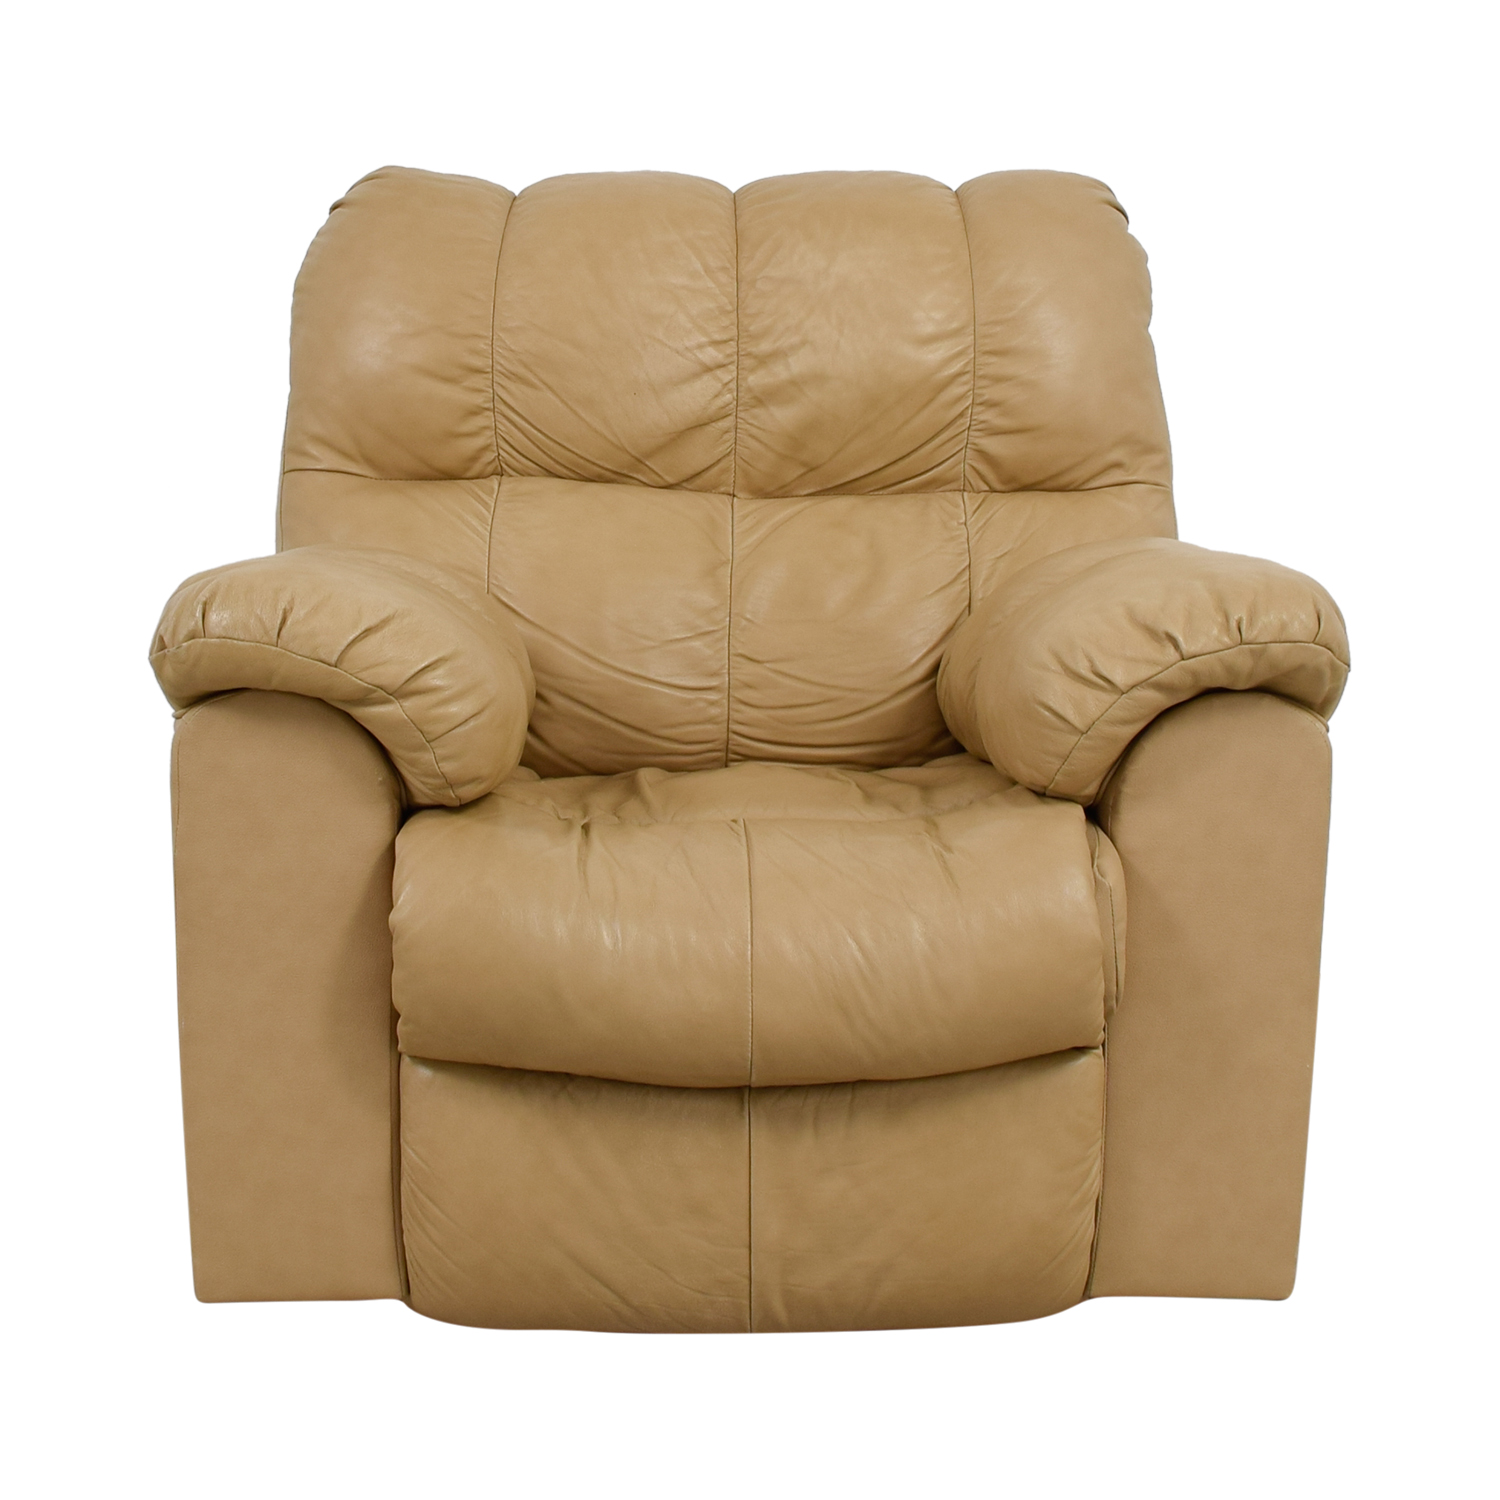 Ashley Furniture Recliner Chairs 90 Off Ashley Furniture Ashley Furniture Tan Leather Recliner Chairs